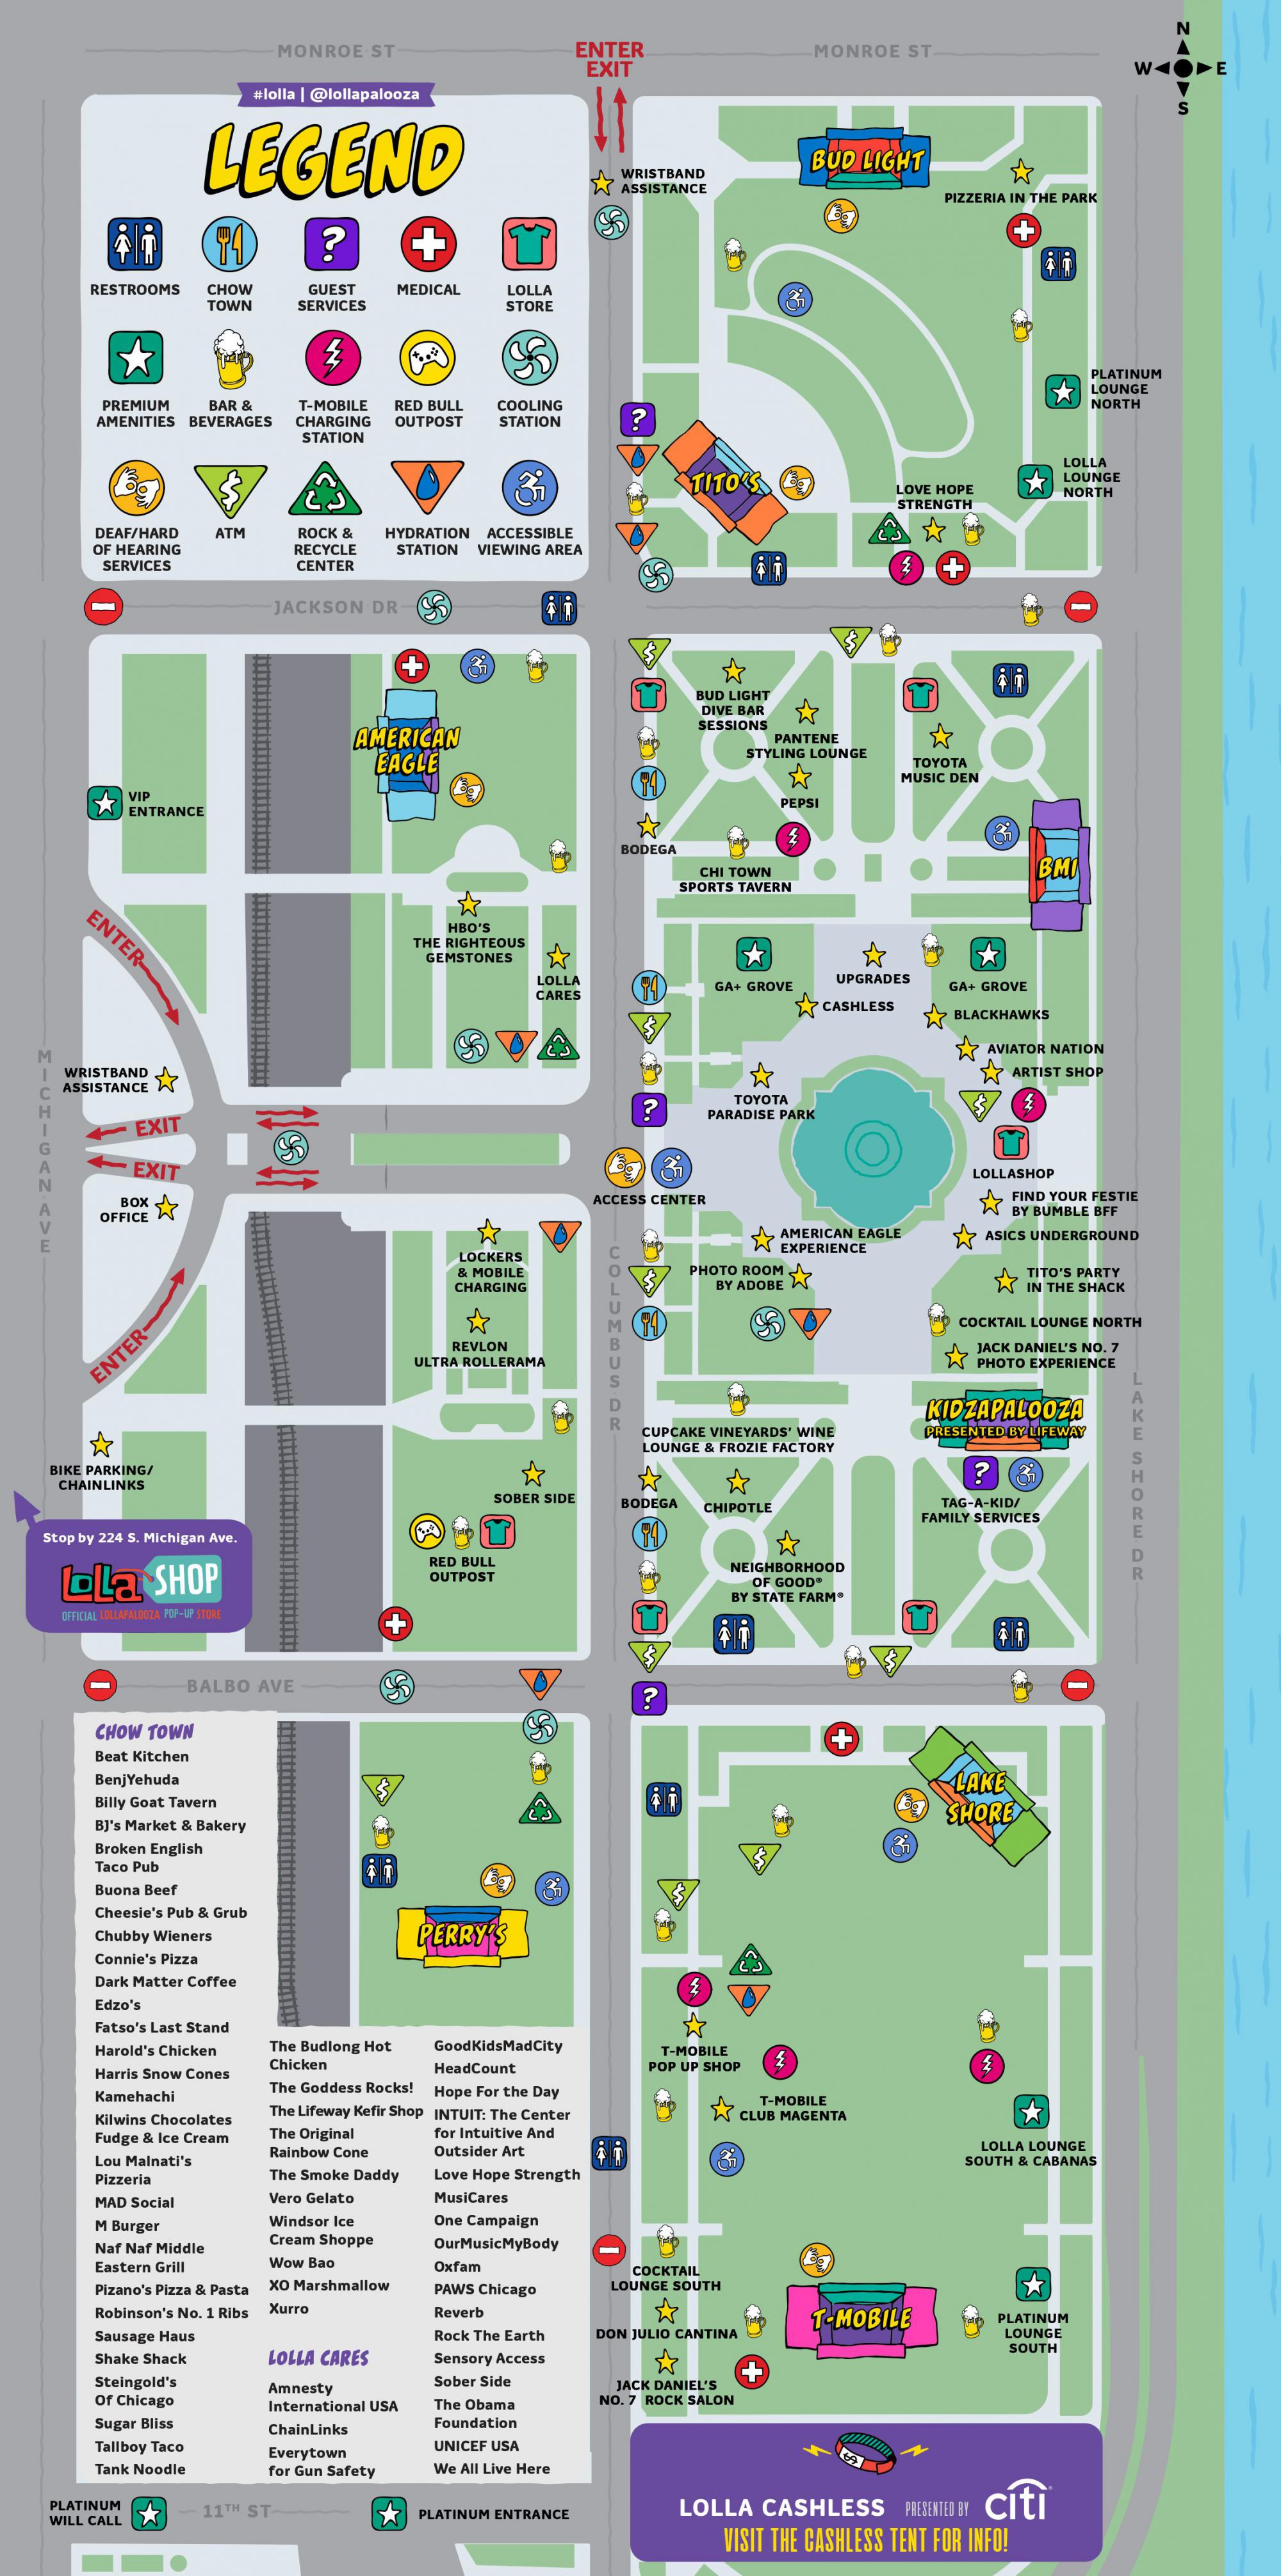 Lollapalooza 2019 Map